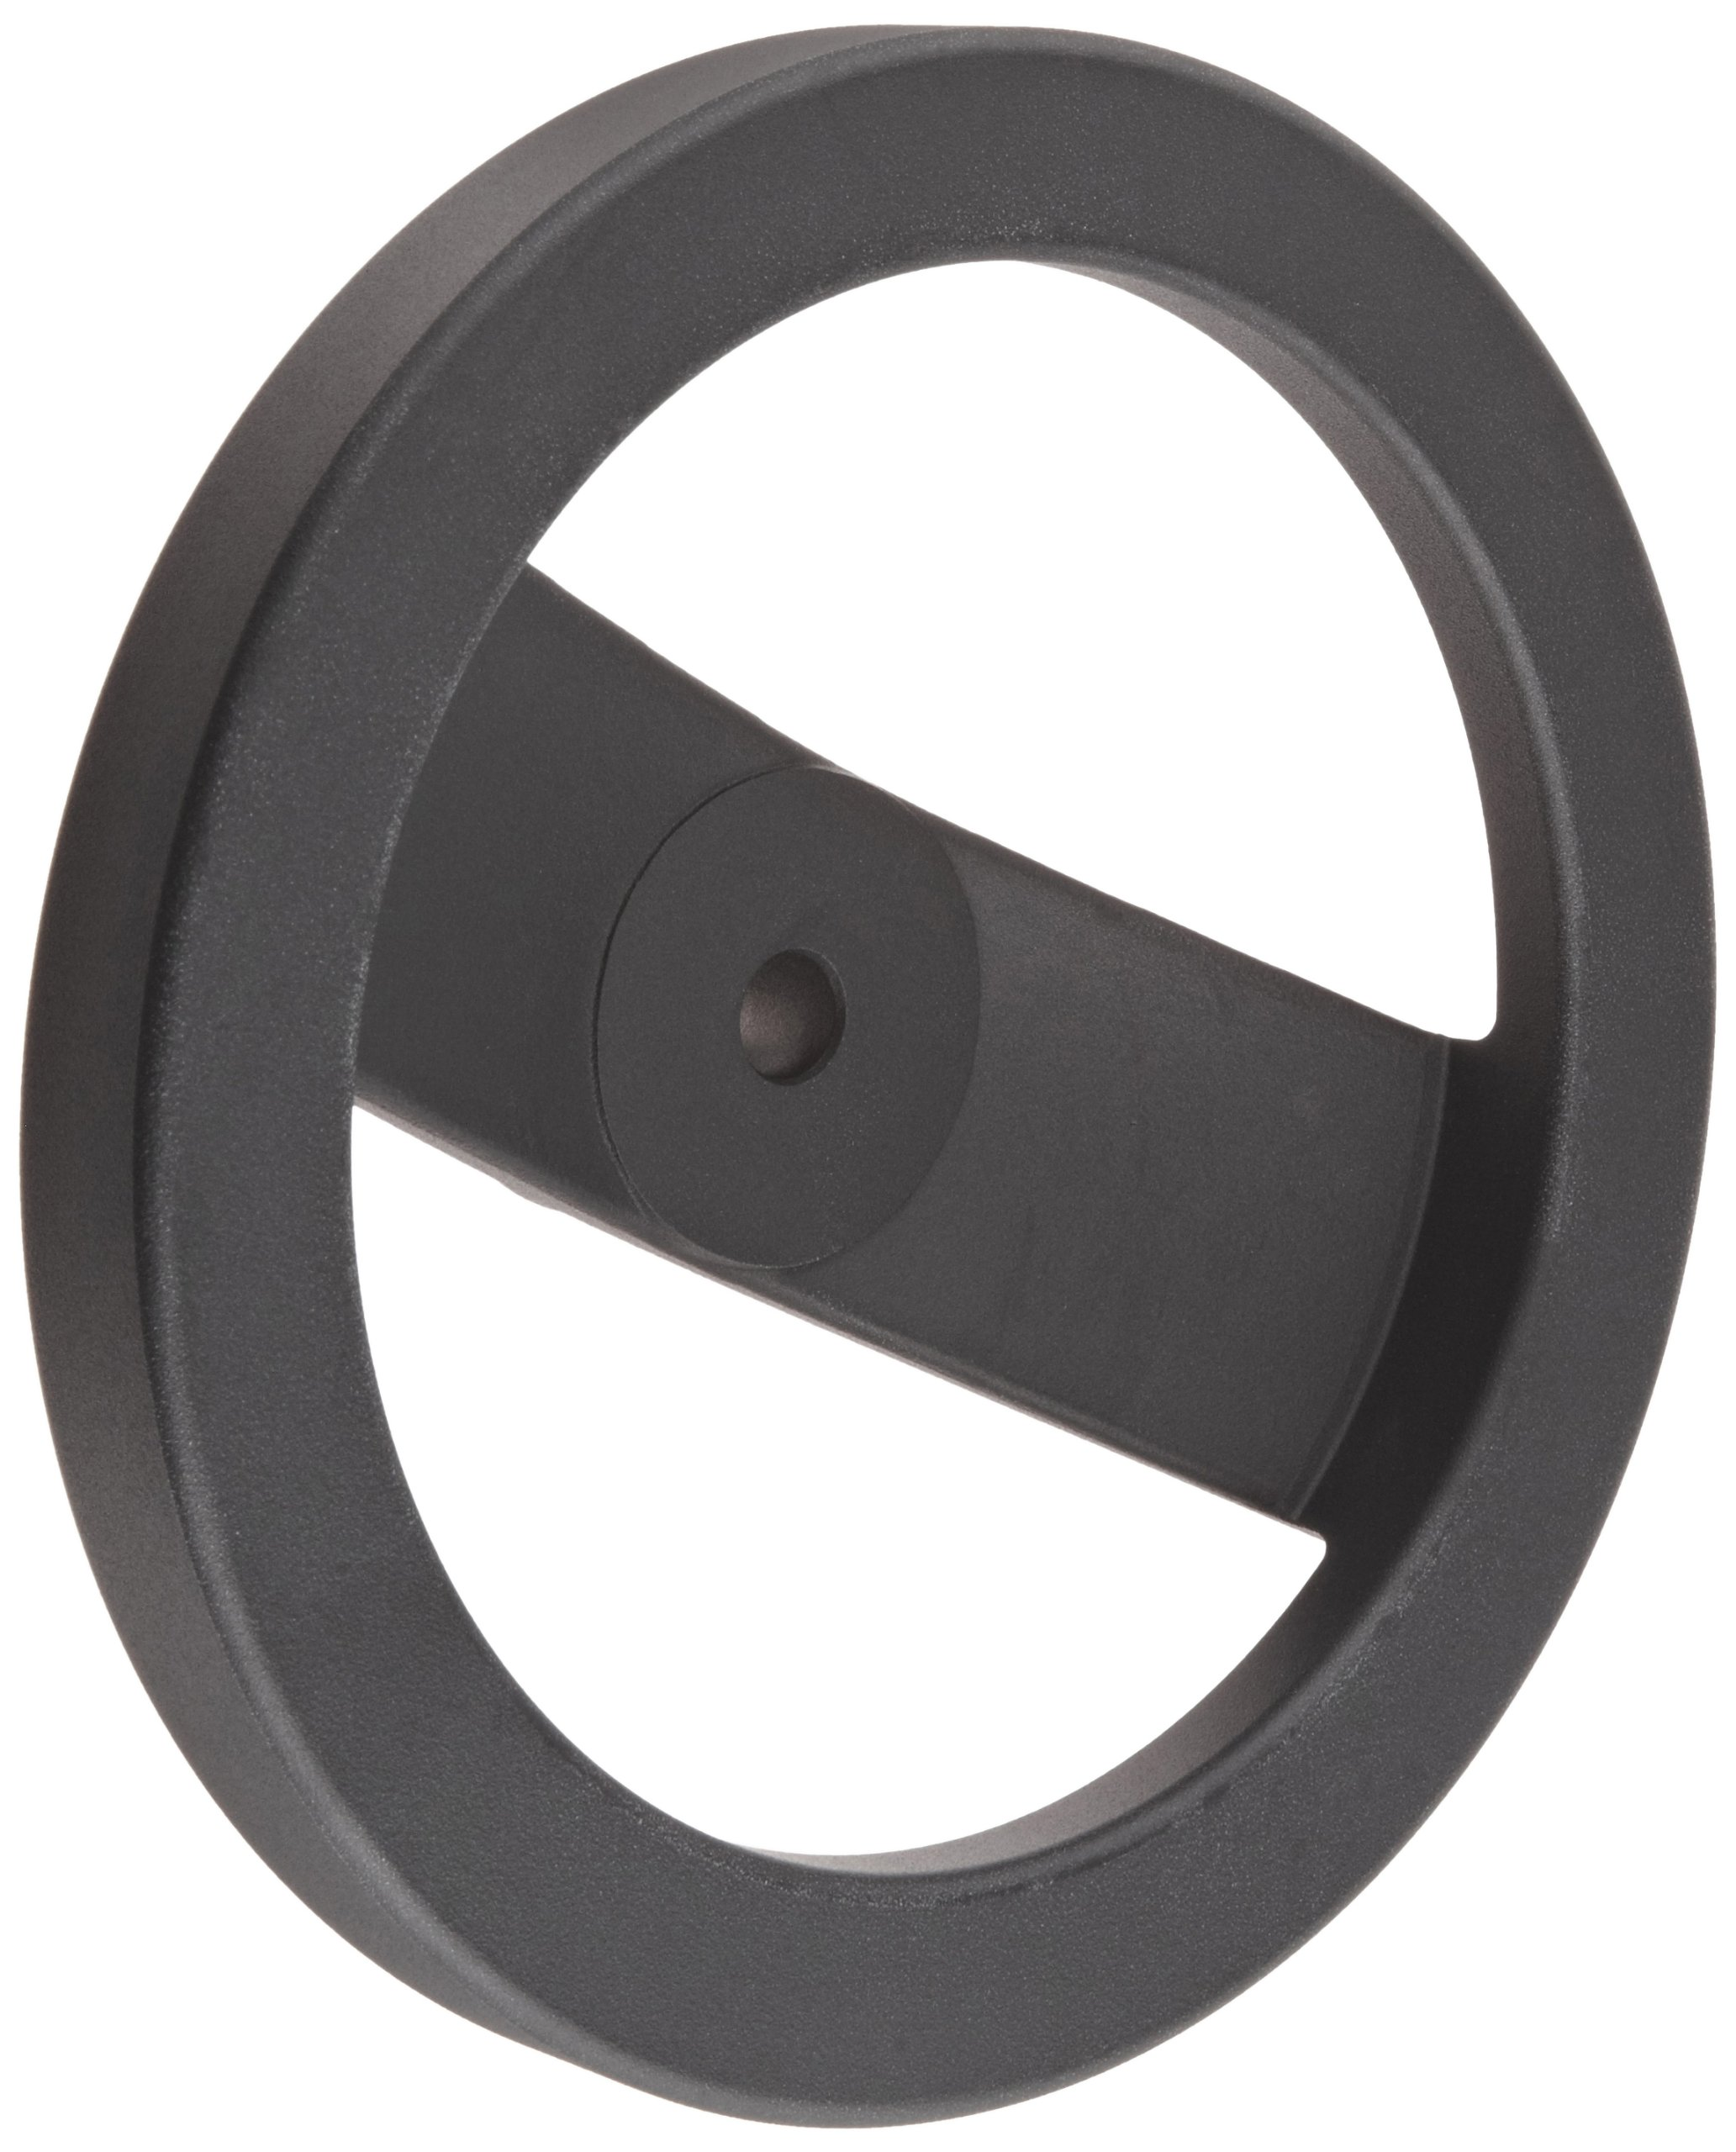 2 Spoked Black Powder Coated Aluminum Dished Hand Wheel without Handle, 8'' Diameter, 1/2'' Hole Diameter (Pack of 1)